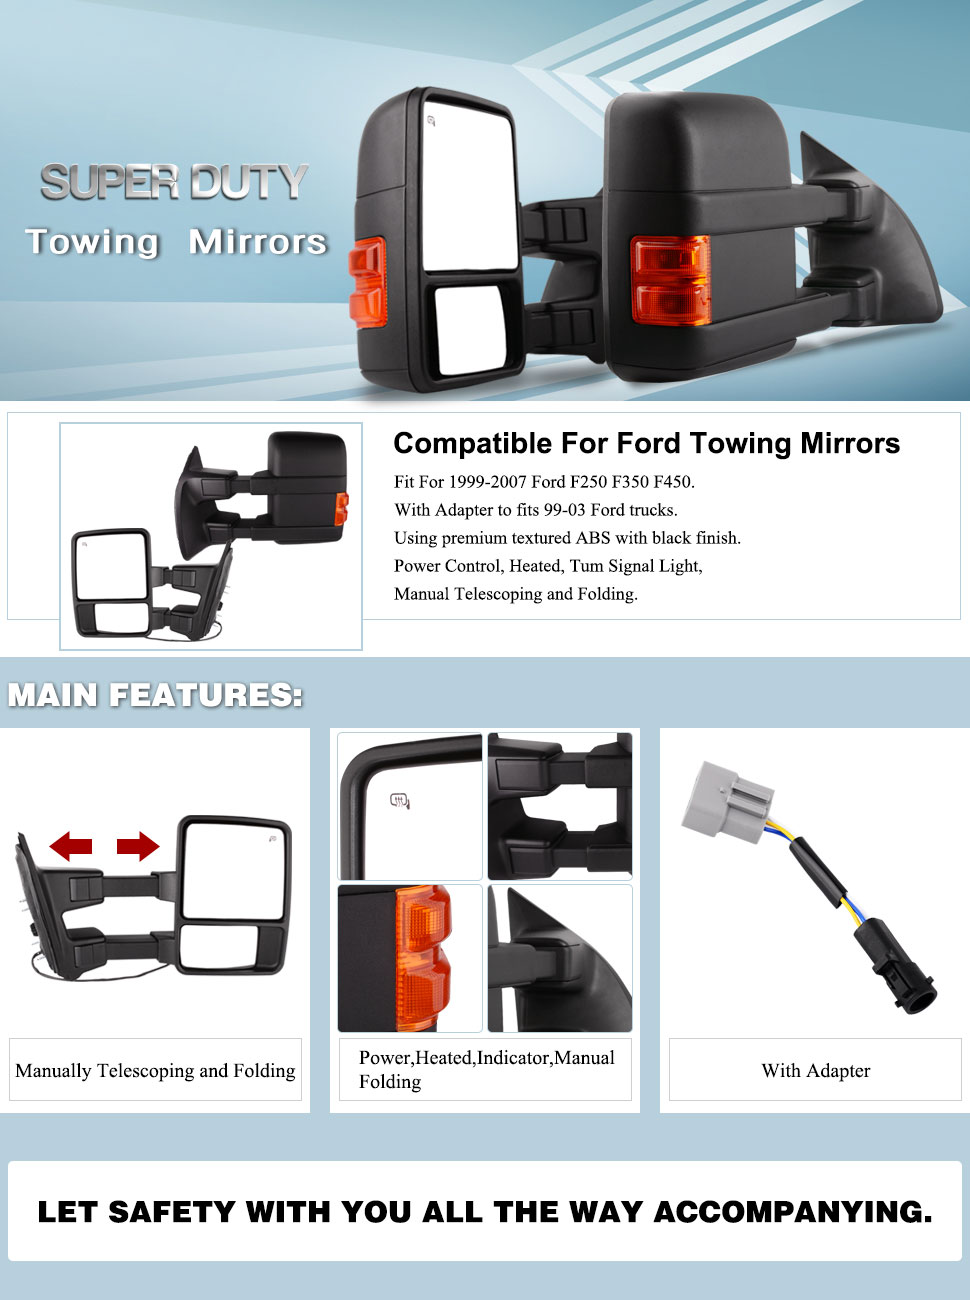 amazon com yitamotor towing mirrors for ford 1999 2007 ford f250 rh amazon com Ford Power Mirror Wiring Diagram Rear View Mirror Wiring Diagram